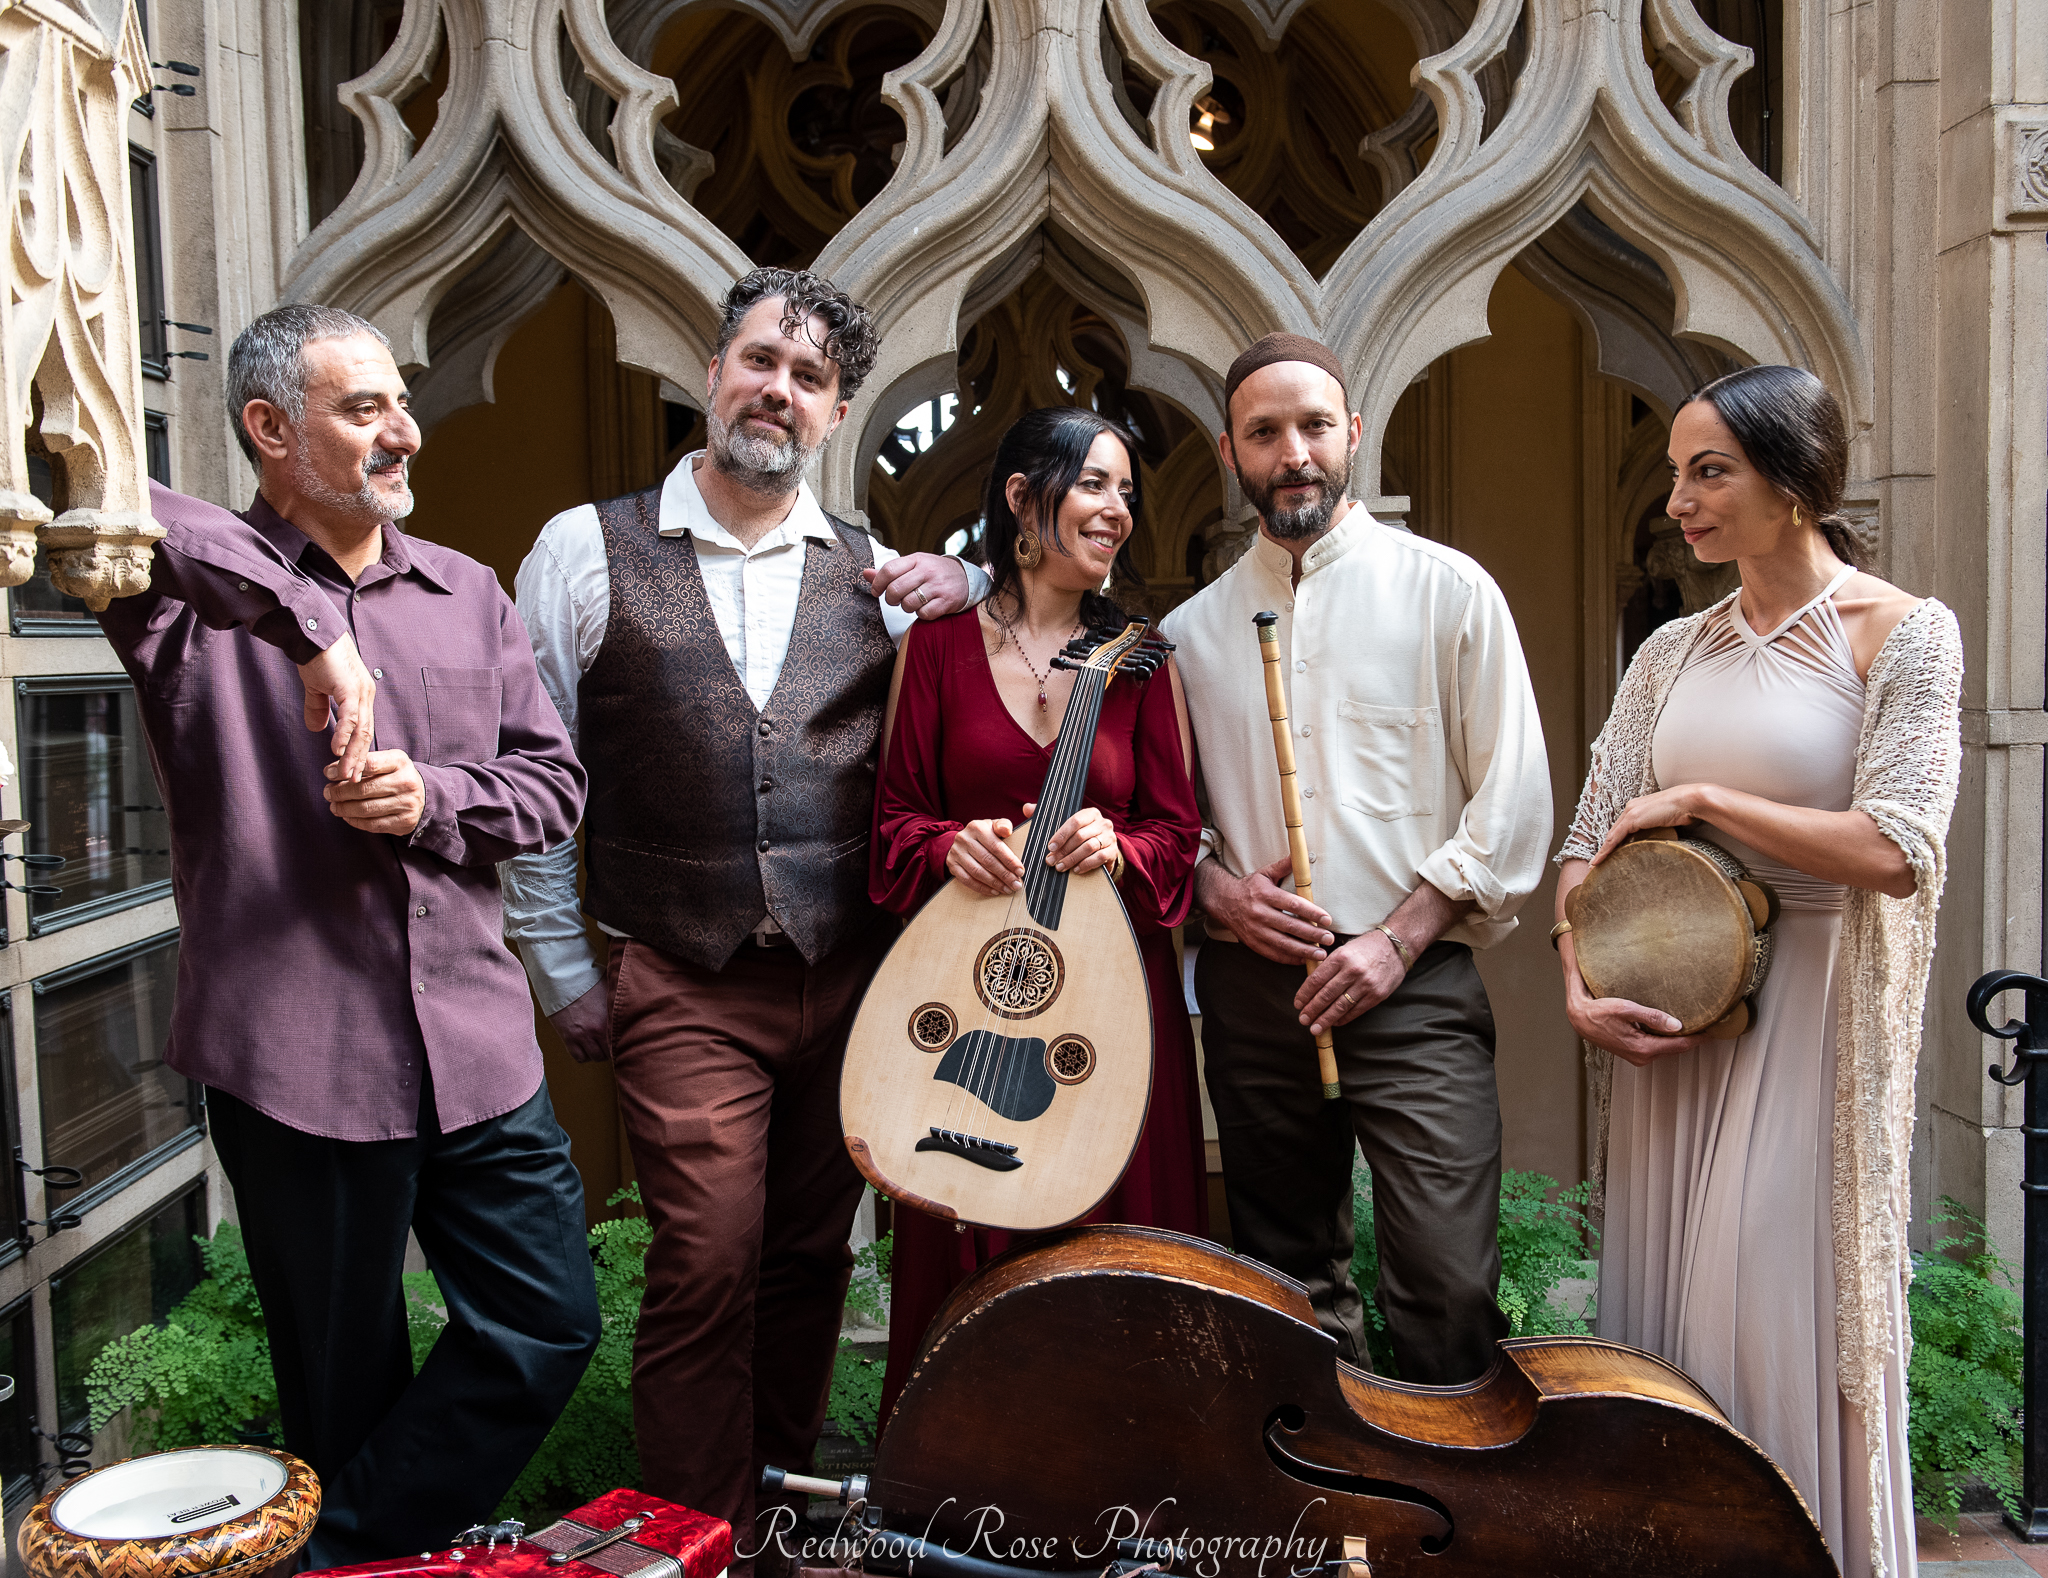 The Qadim Ensemble photo